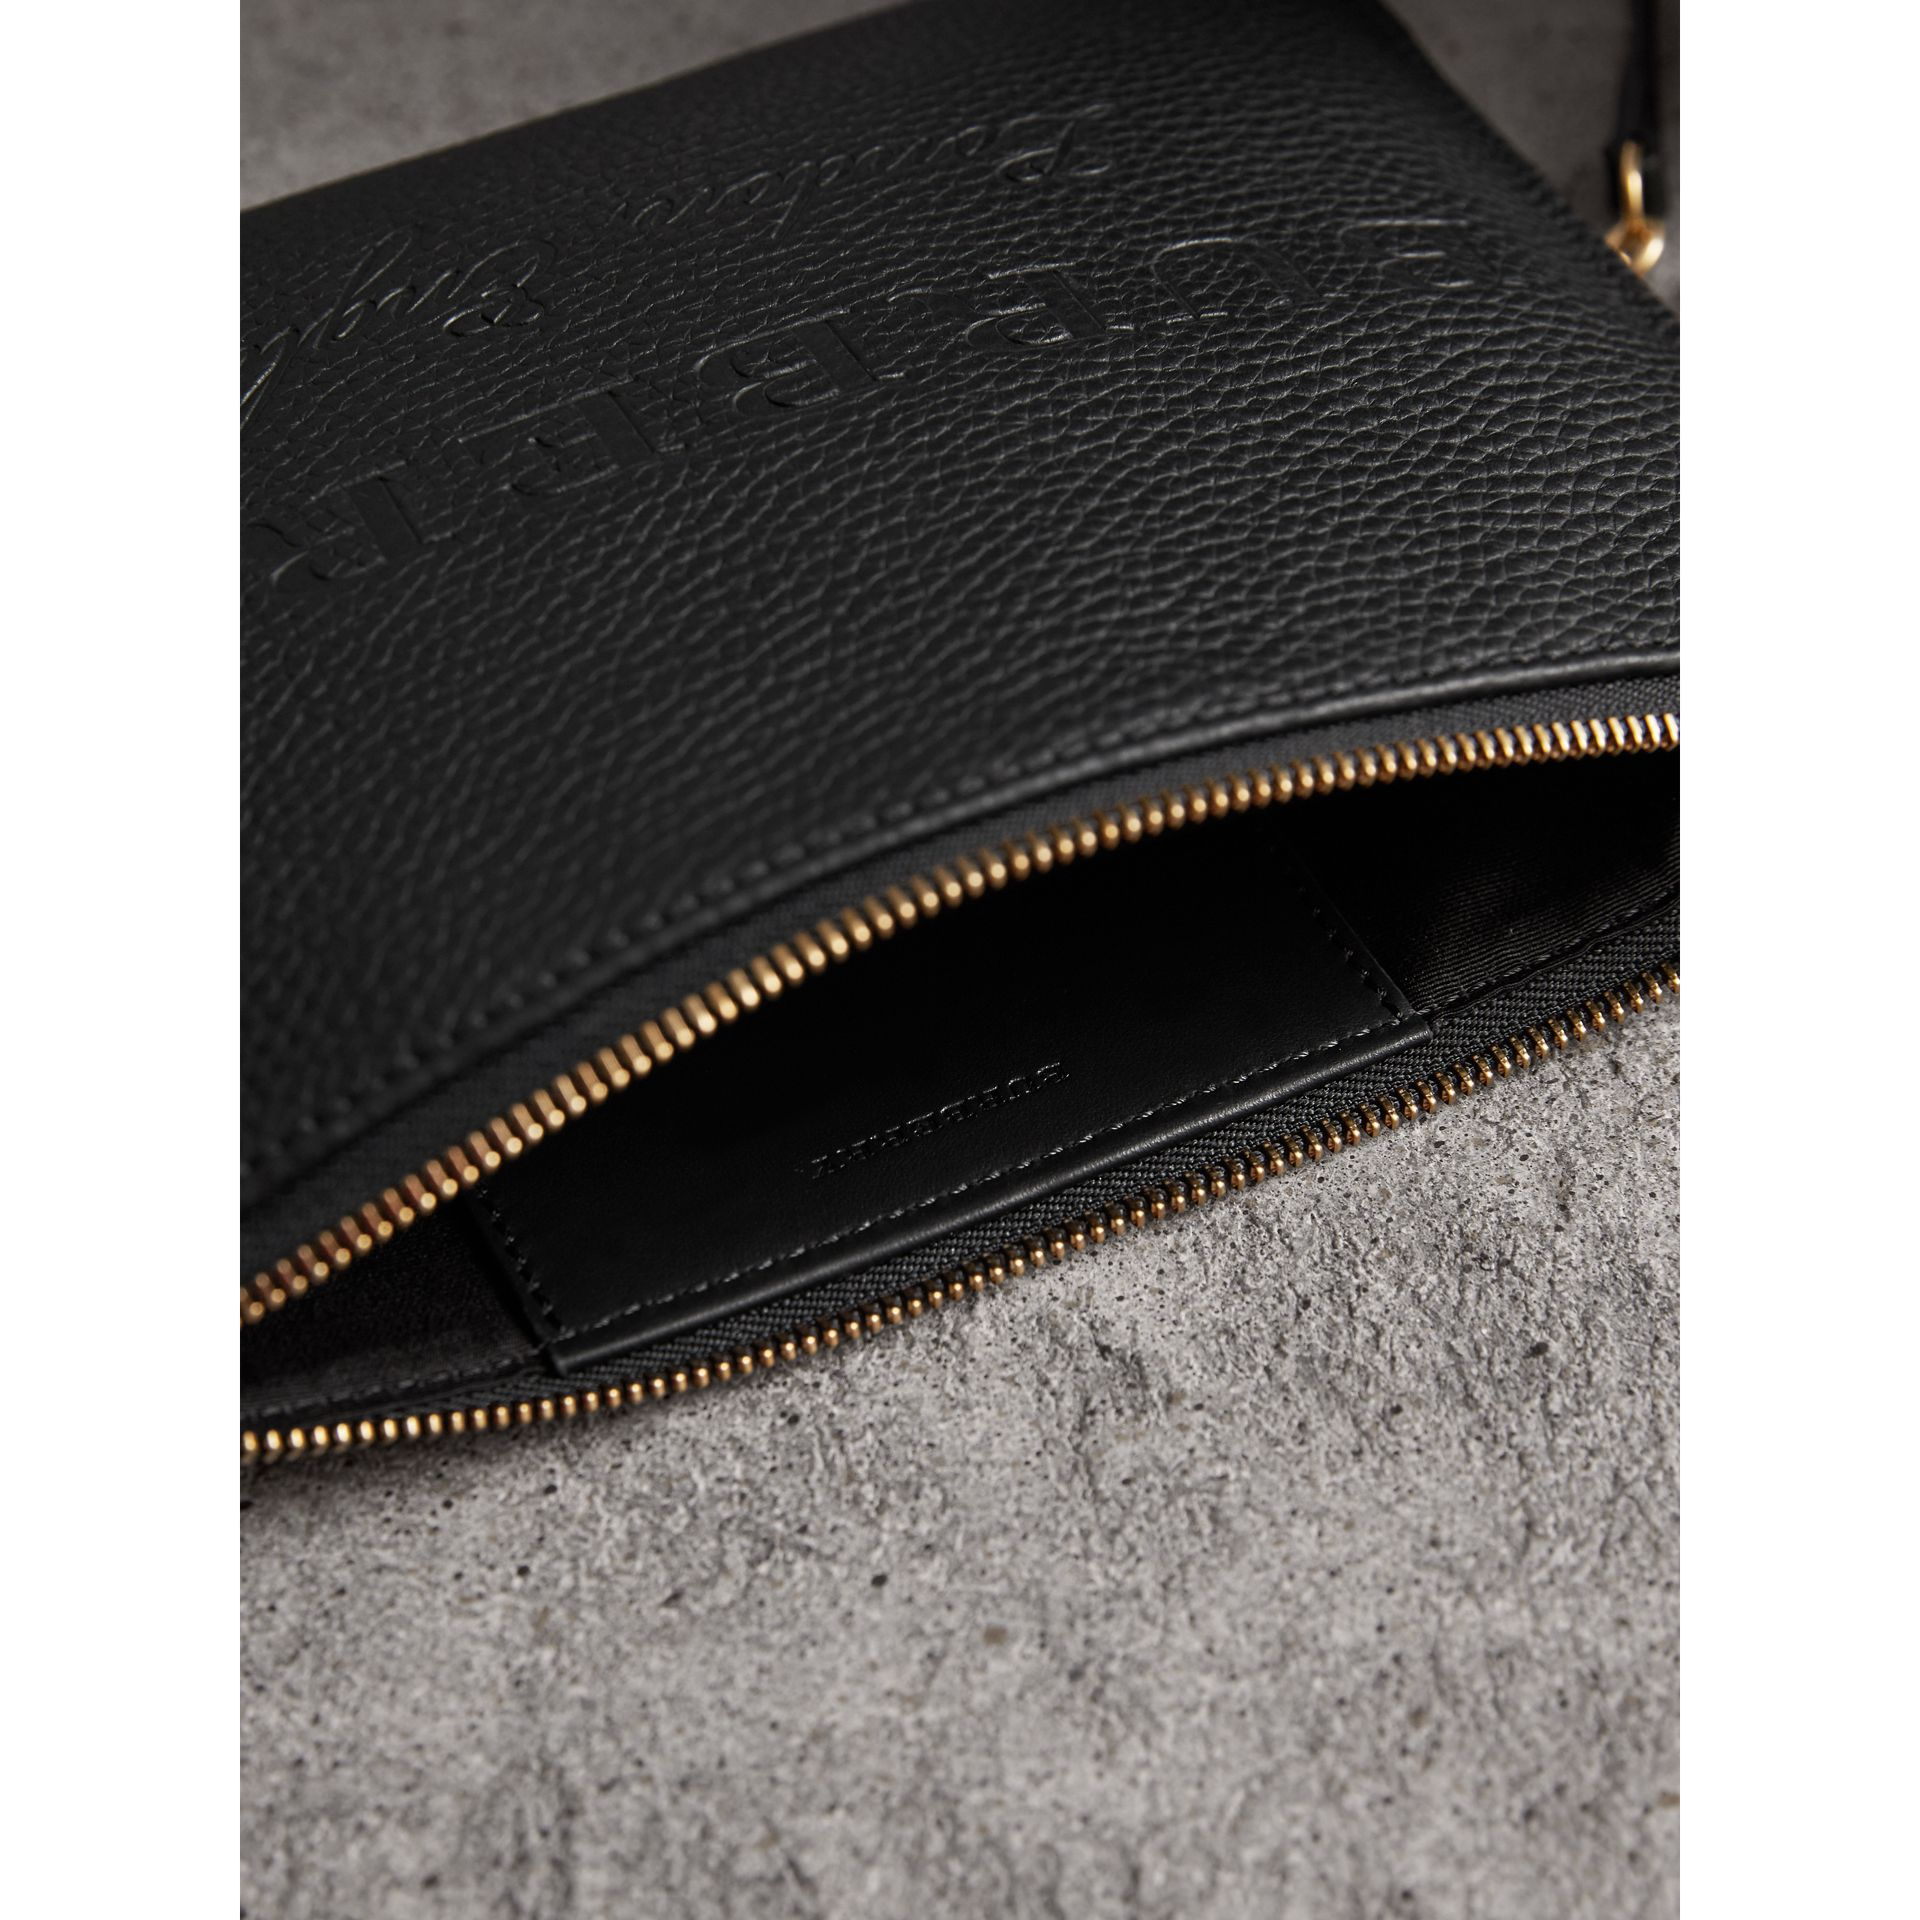 Embossed Leather Clutch Bag in Black - Women | Burberry Canada - gallery image 5